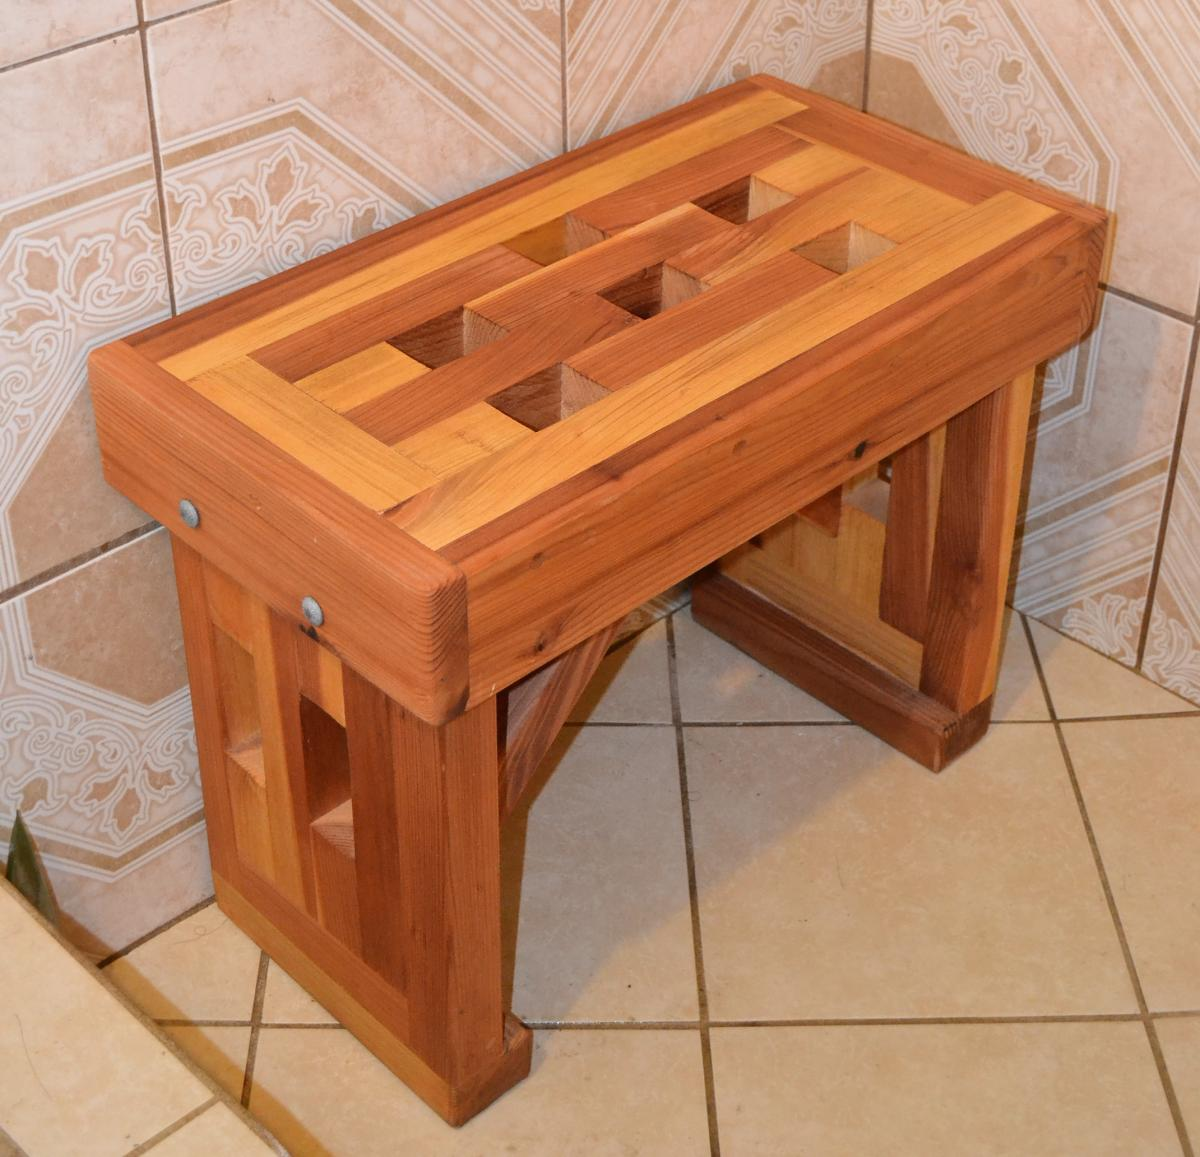 Wooden Shower Bench Small